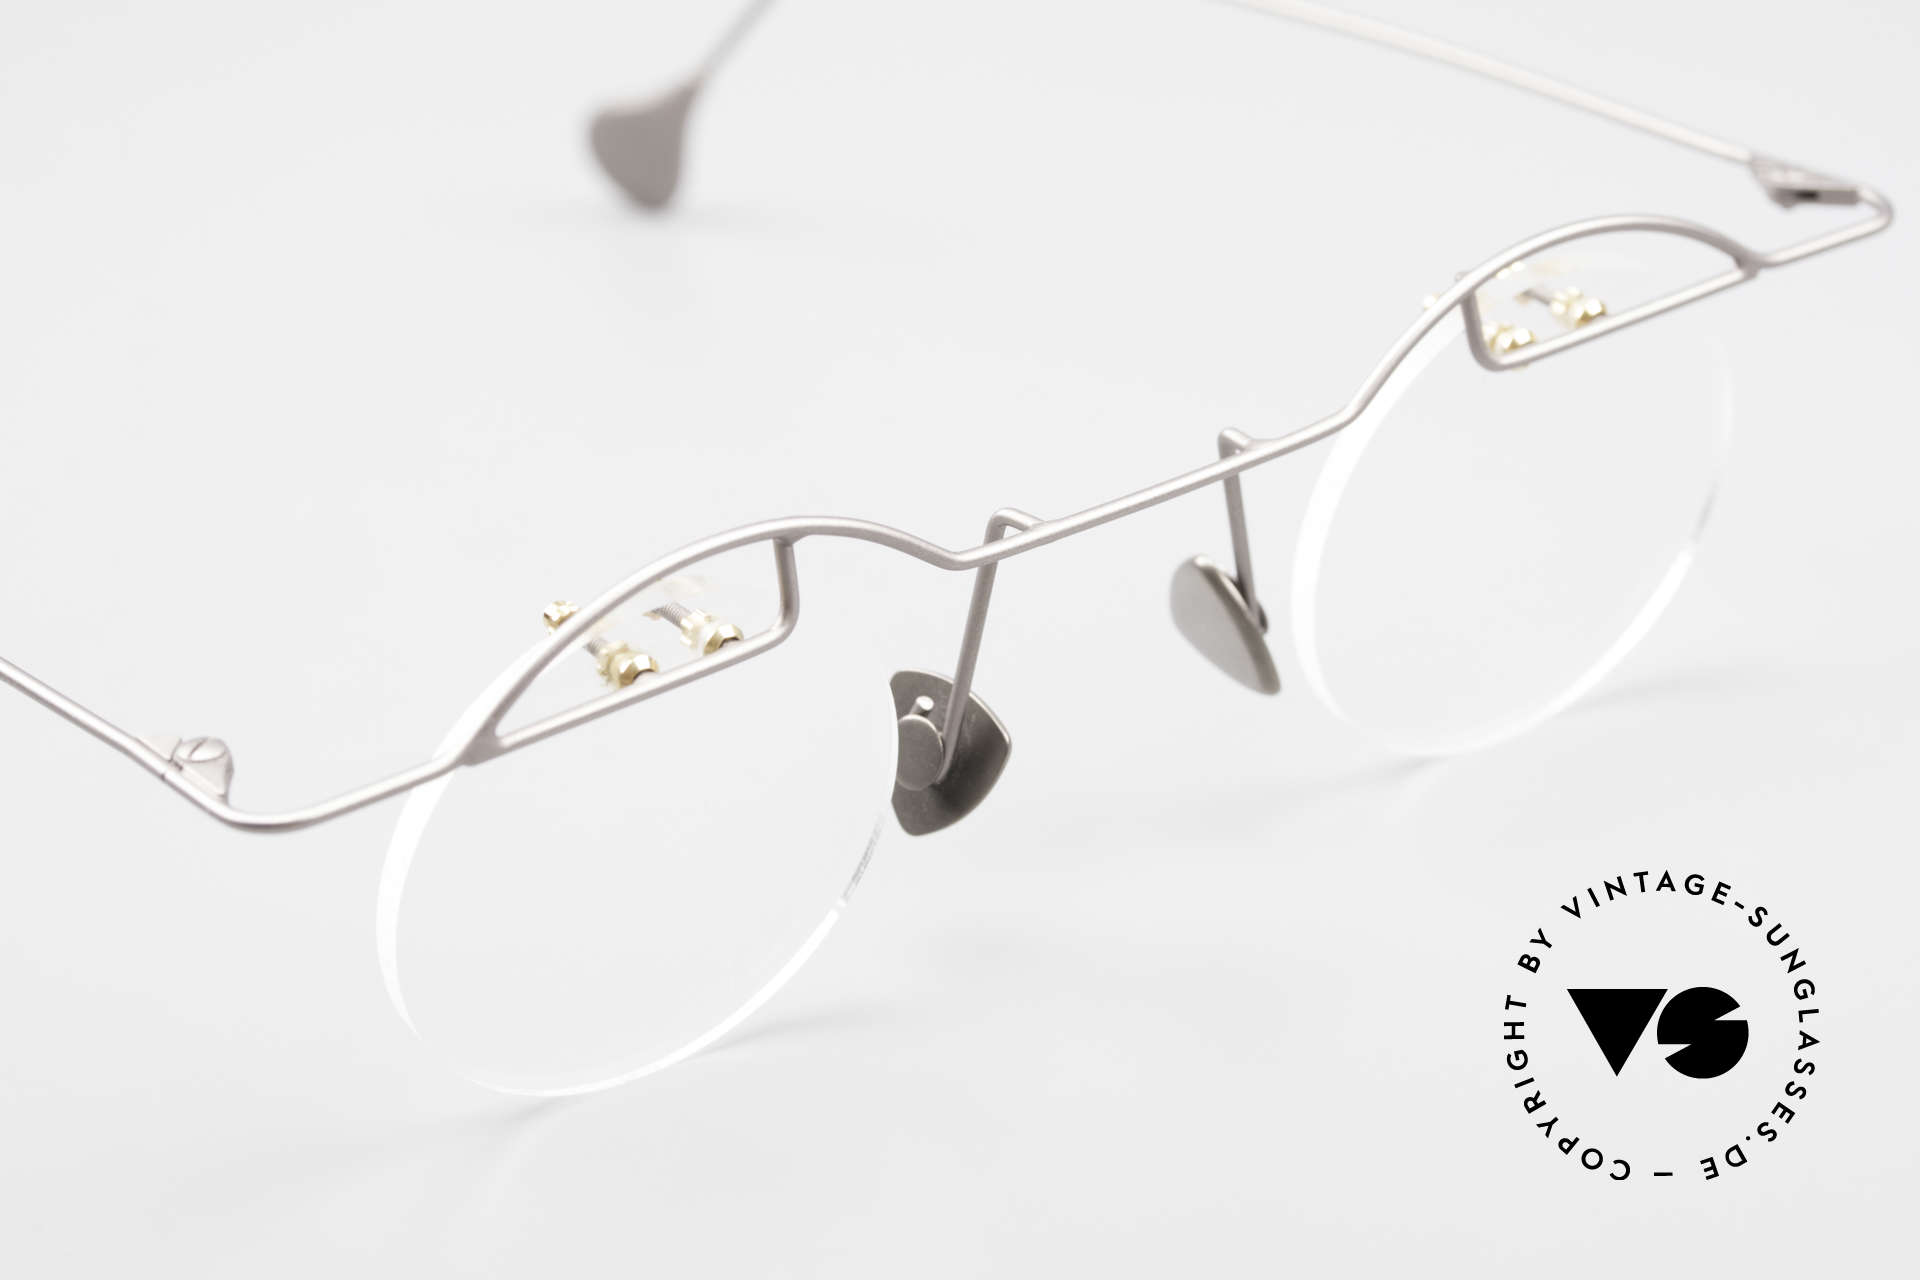 Paul Chiol 02 Rimless Eyeglasses Bauhaus, the frame (Bauhaus style) can be glazed optionally, Made for Men and Women